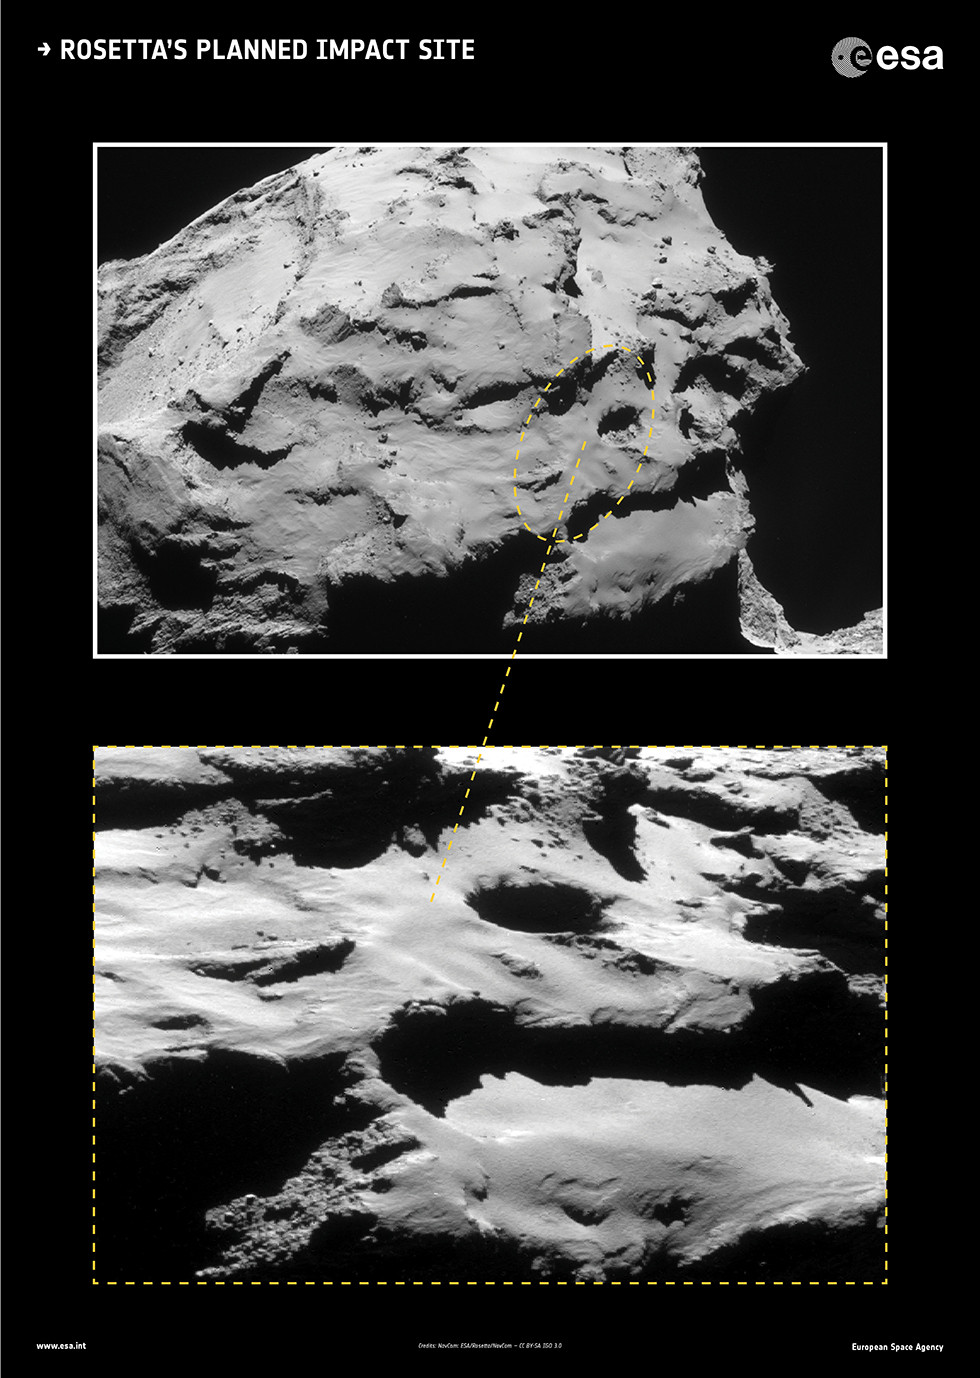 rosetta planned impact site medium